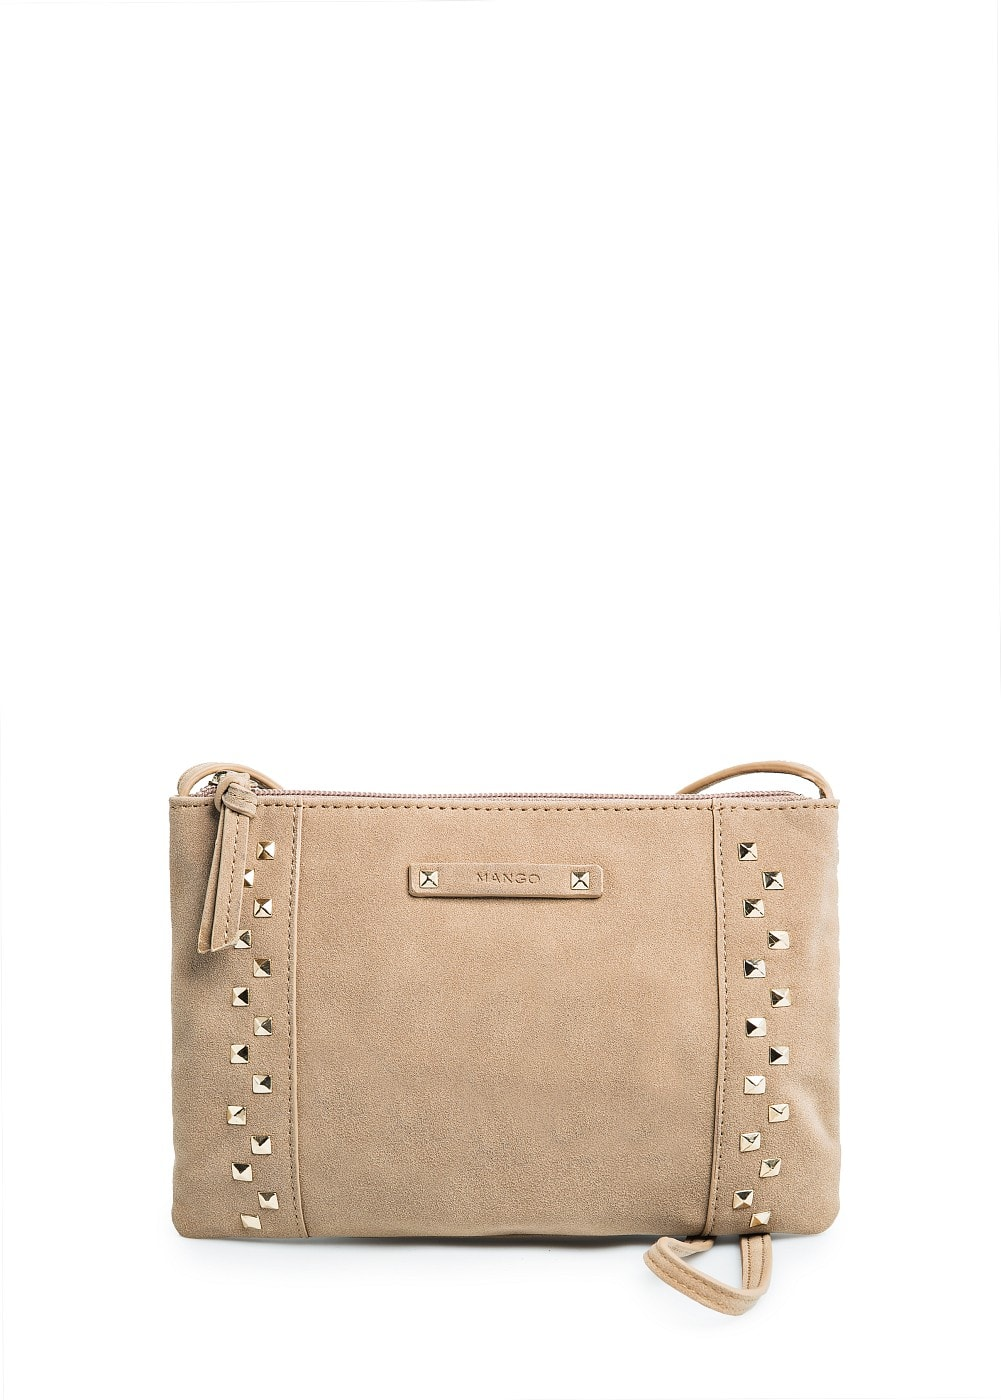 STUDDED MINI SHOULDER BAG